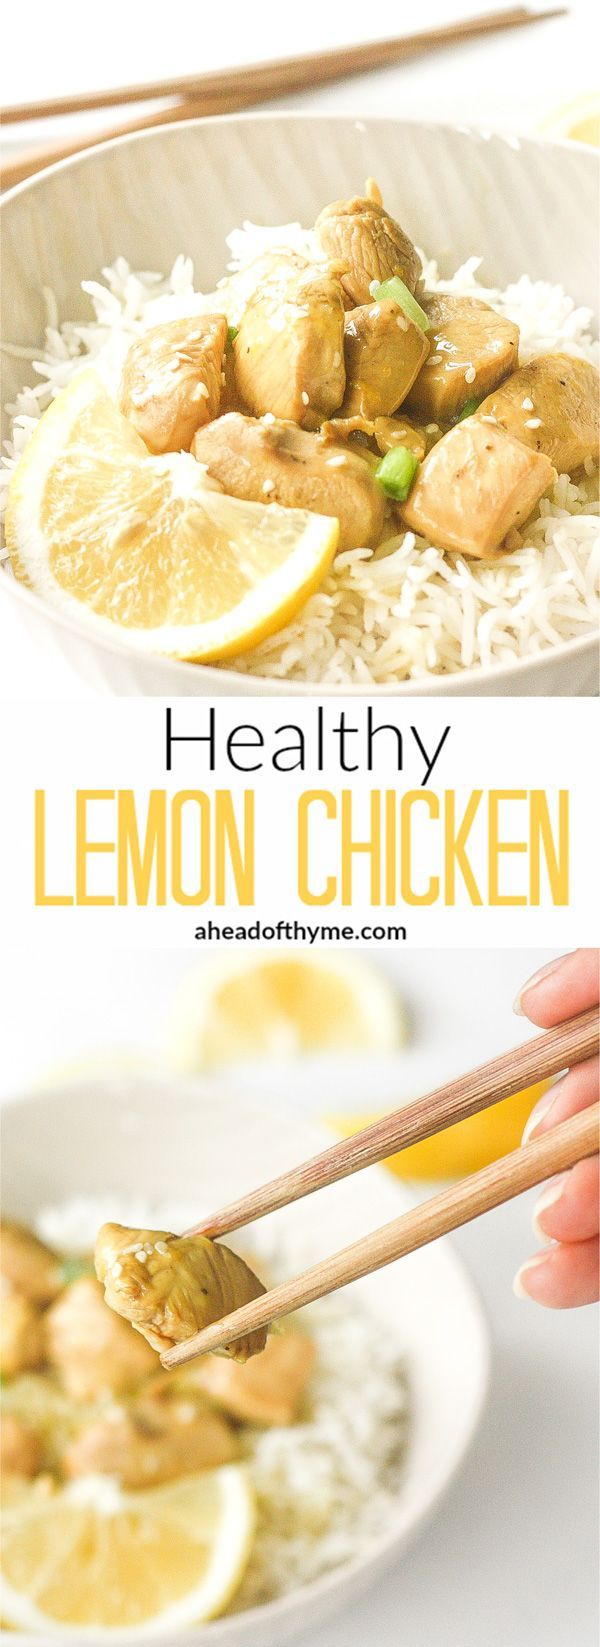 Healthy Lemon Chicken: A twist on a classic sweet and tangy Chinese dish, this healthy version of lemon chicken is quick and easy! | http://aheadofthyme.com